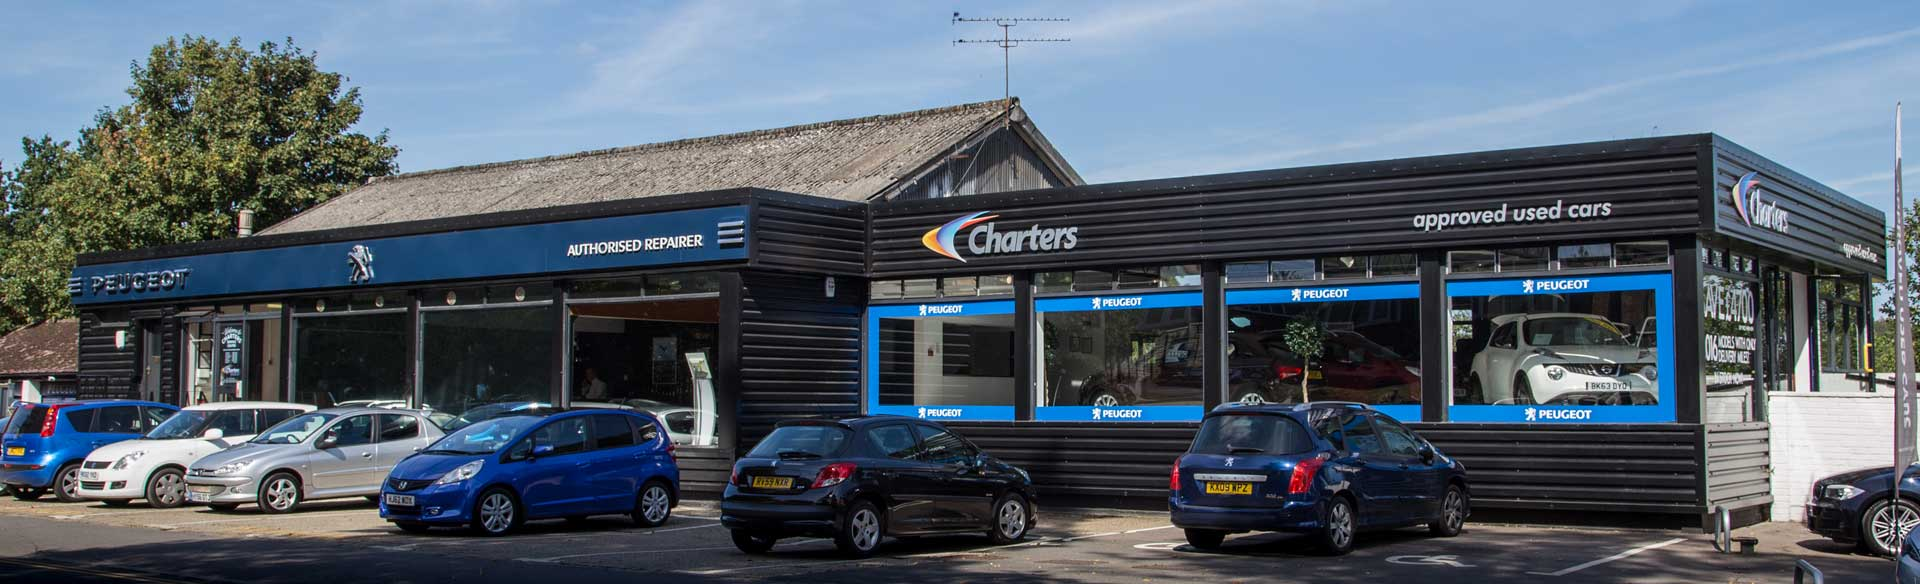 charters-reading-used-car-centre-showroom